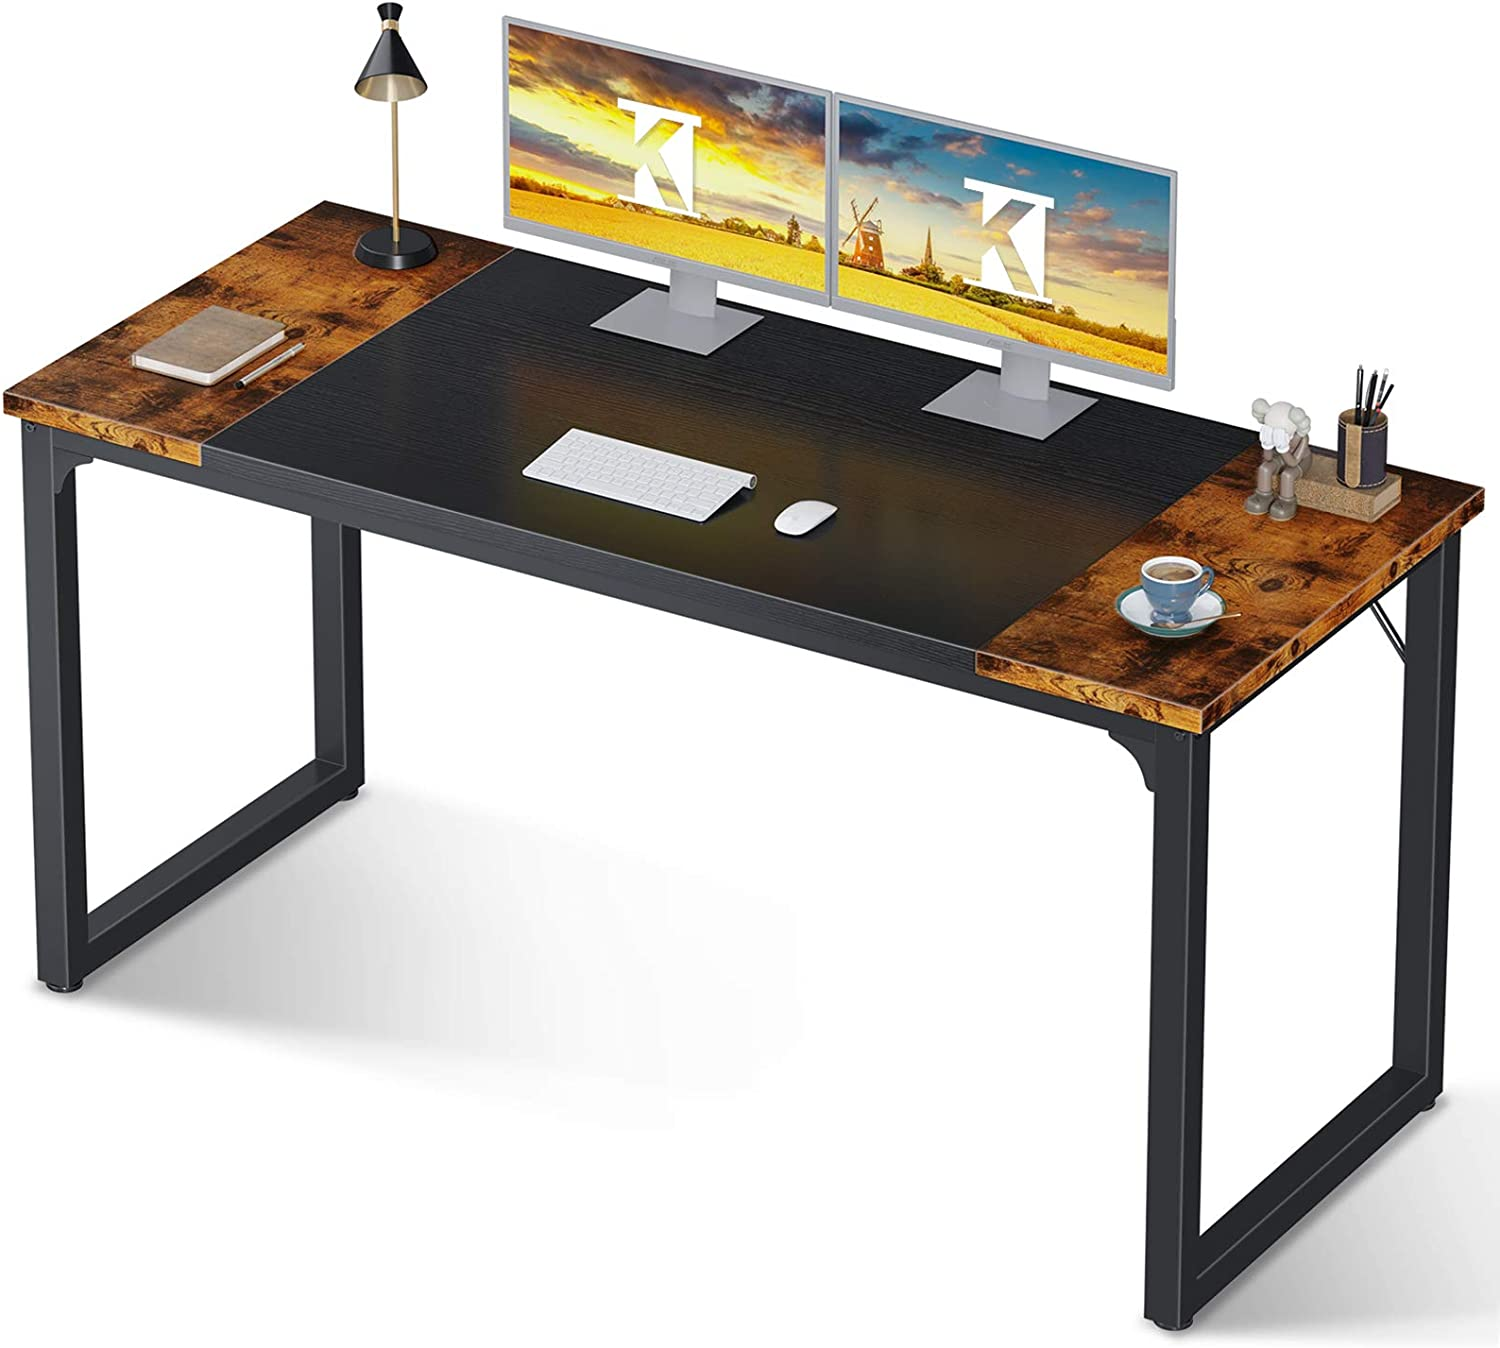 Coleshome Computer Study Writing Desk 55 inch,Work Home Office Desk for Small Space, Student Desk with Splice Board, Vintage and Black